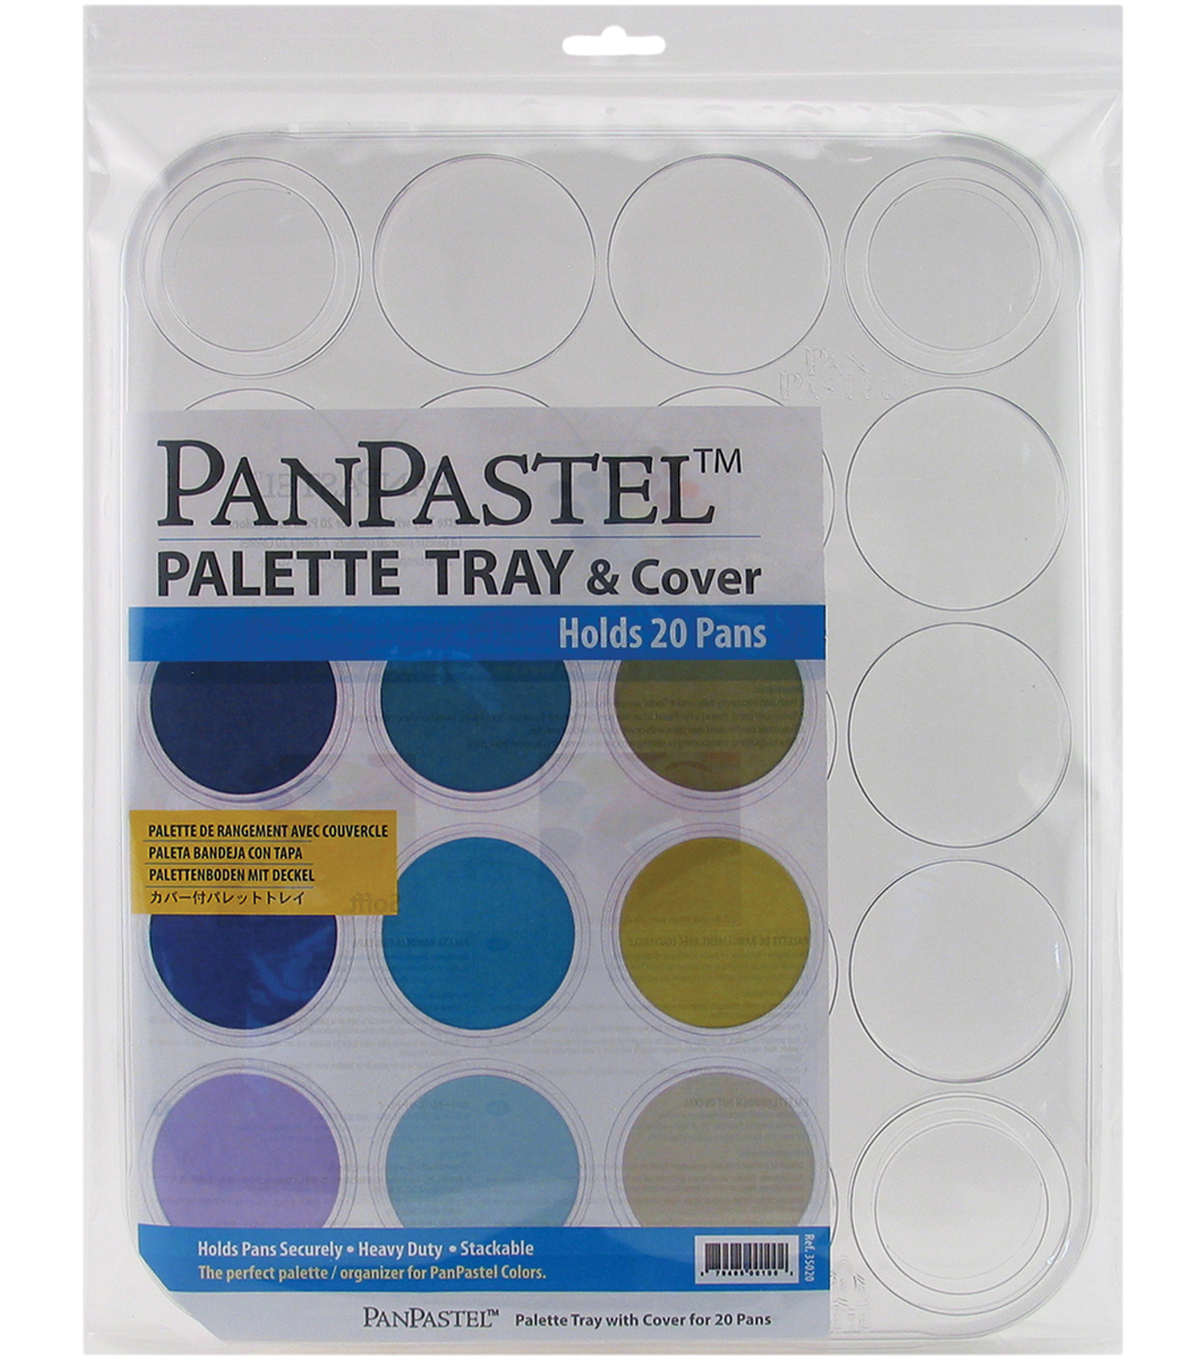 PanPastel 20 Color Palette Tray & Cover